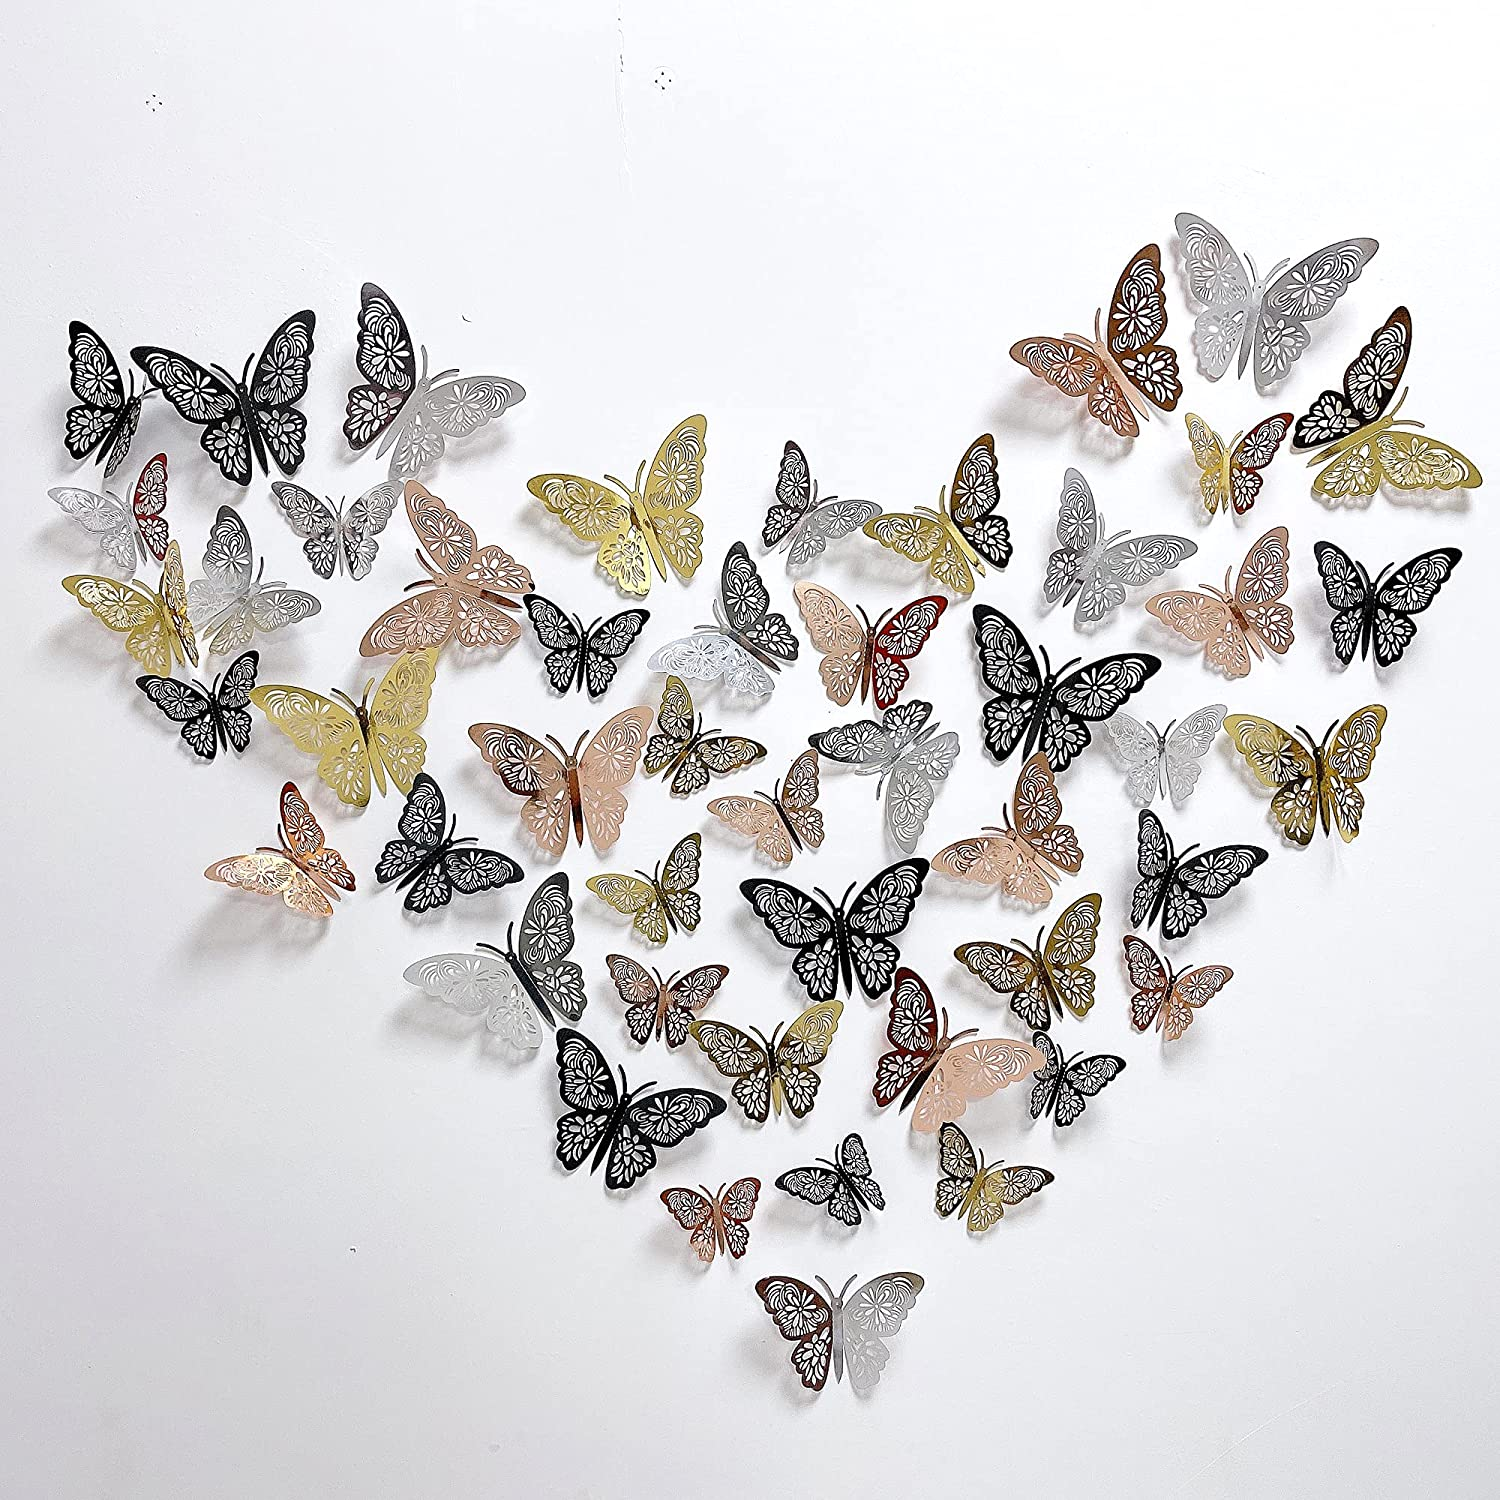 DUQGUHO 48 Pcs Butterfly Wall Decor Stickers Girls Kids Bedroom 3D Art Mural Decoration for Home Living Room Party Nursery Classroom Offices Decor